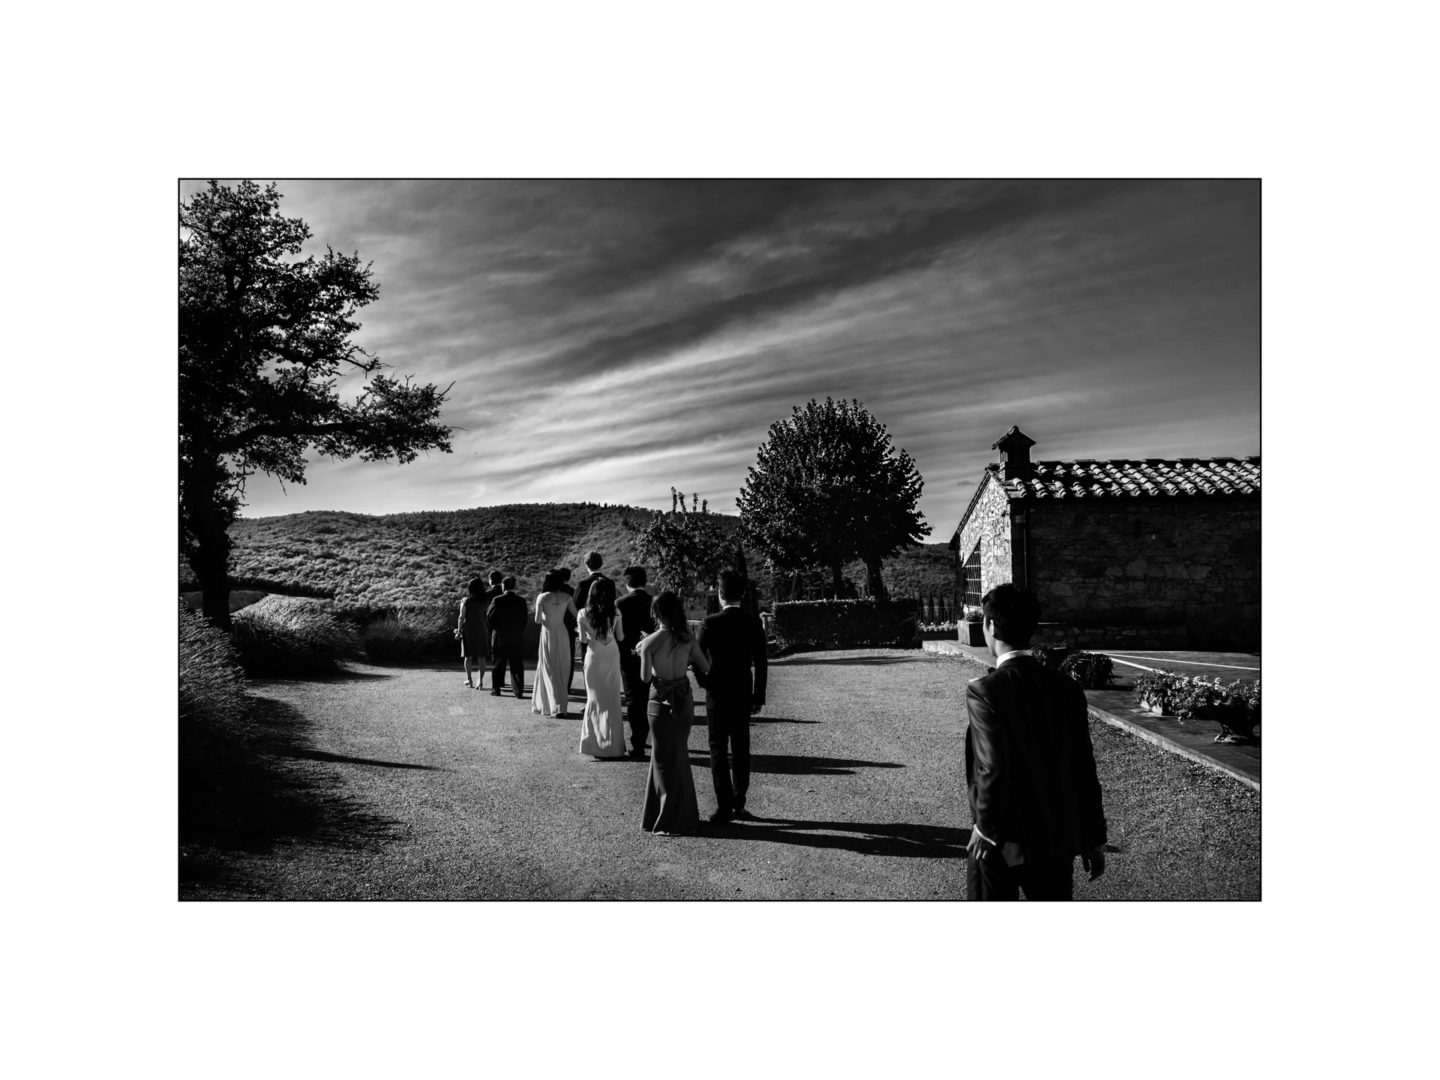 castello-di-meleto-david-bastianoni-photographer-00015 :: Black and white wedding_ Castello di Meleto :: Luxury wedding photography - 14 :: castello-di-meleto-david-bastianoni-photographer-00015